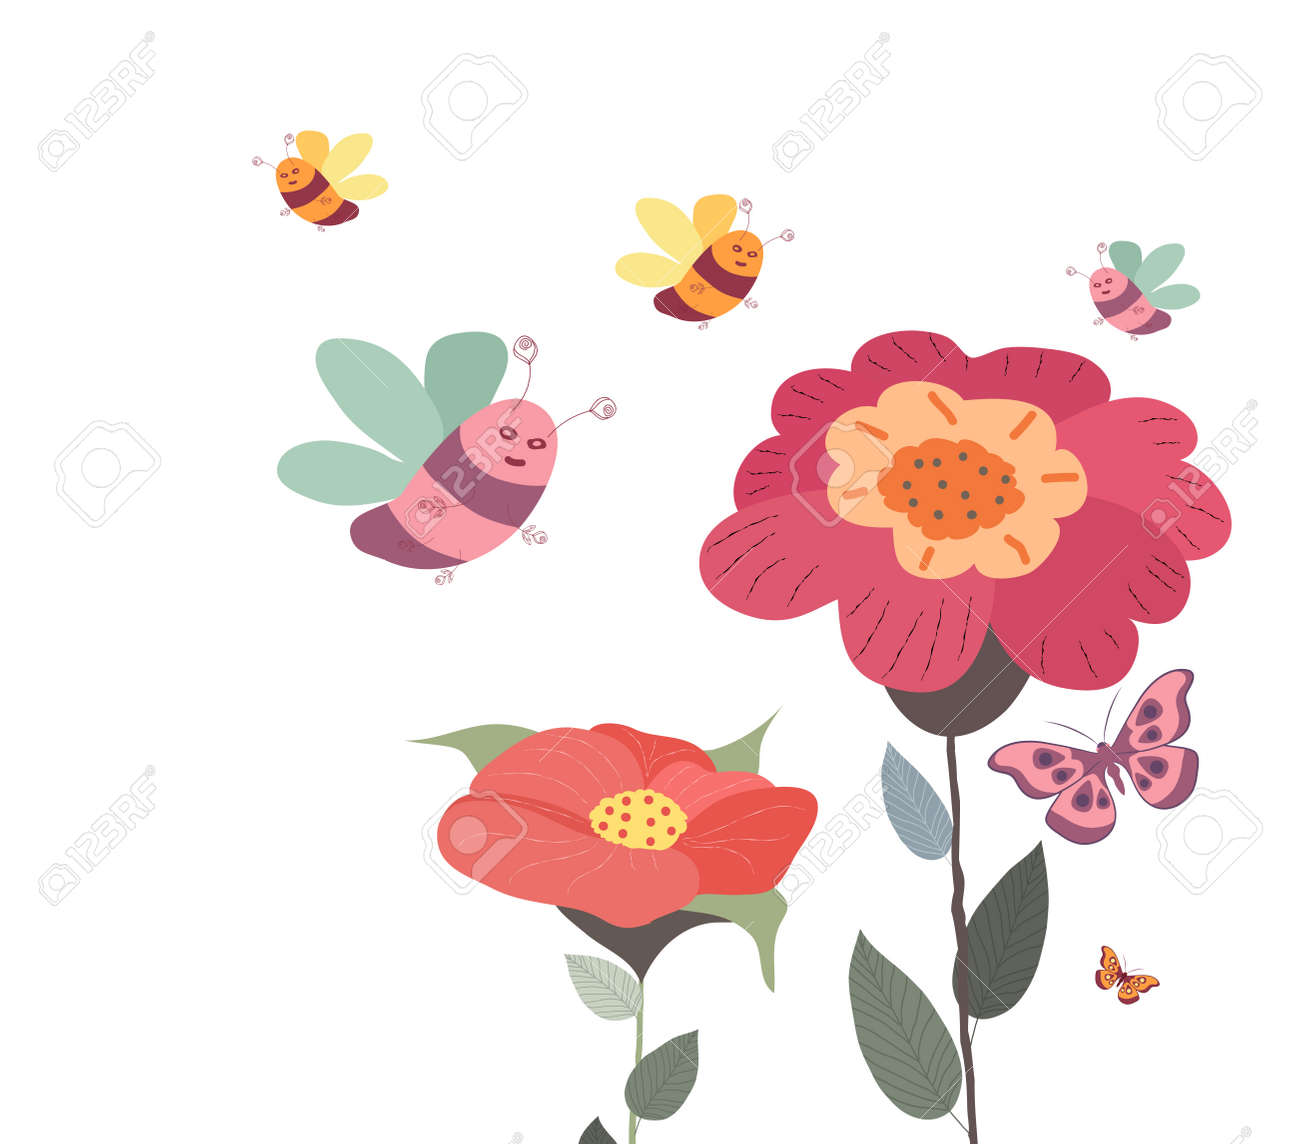 Springs flowers and floral background with butterflies and bees springs flowers and floral background with butterflies and bees vector illustration stock vector 96279585 mightylinksfo